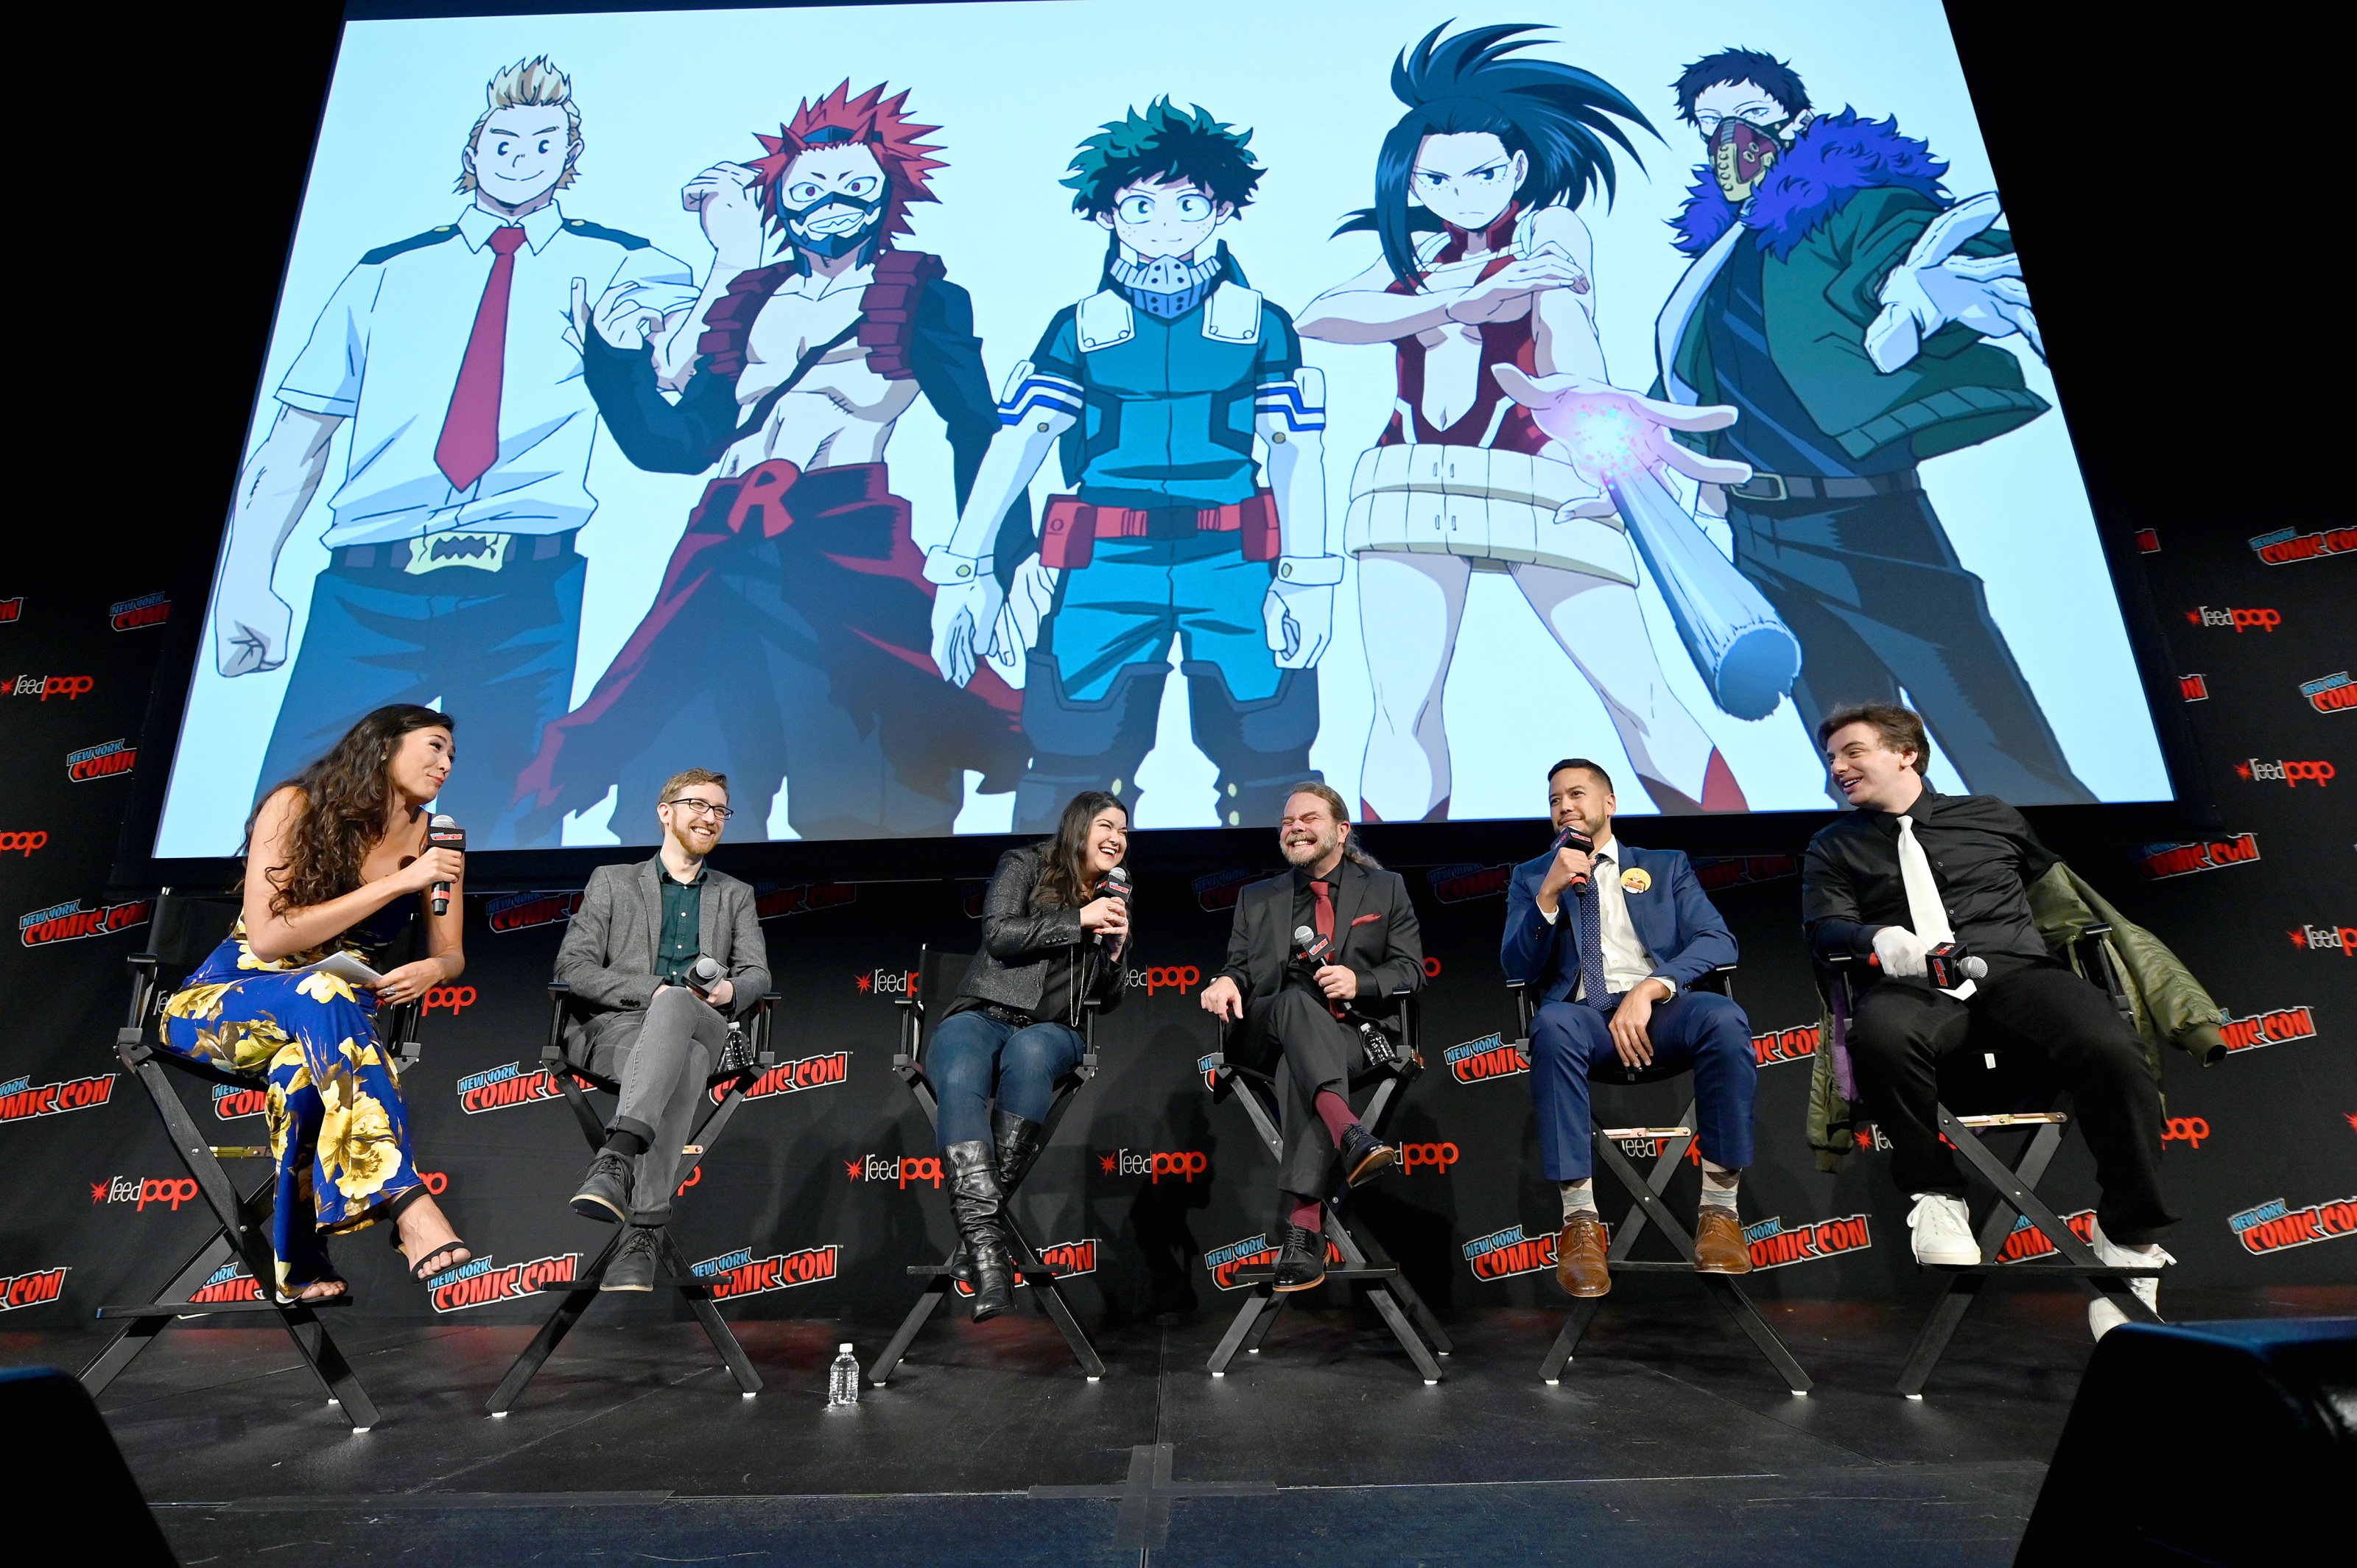 My Hero Academia Season 4 Episode 9 Review Red Riot S Resolve The fall of his second year, the virgin recognized the preciousness of youth through the culture festival. https culturess com 2019 12 14 my hero academia season 4 episode 9 red riots resolve